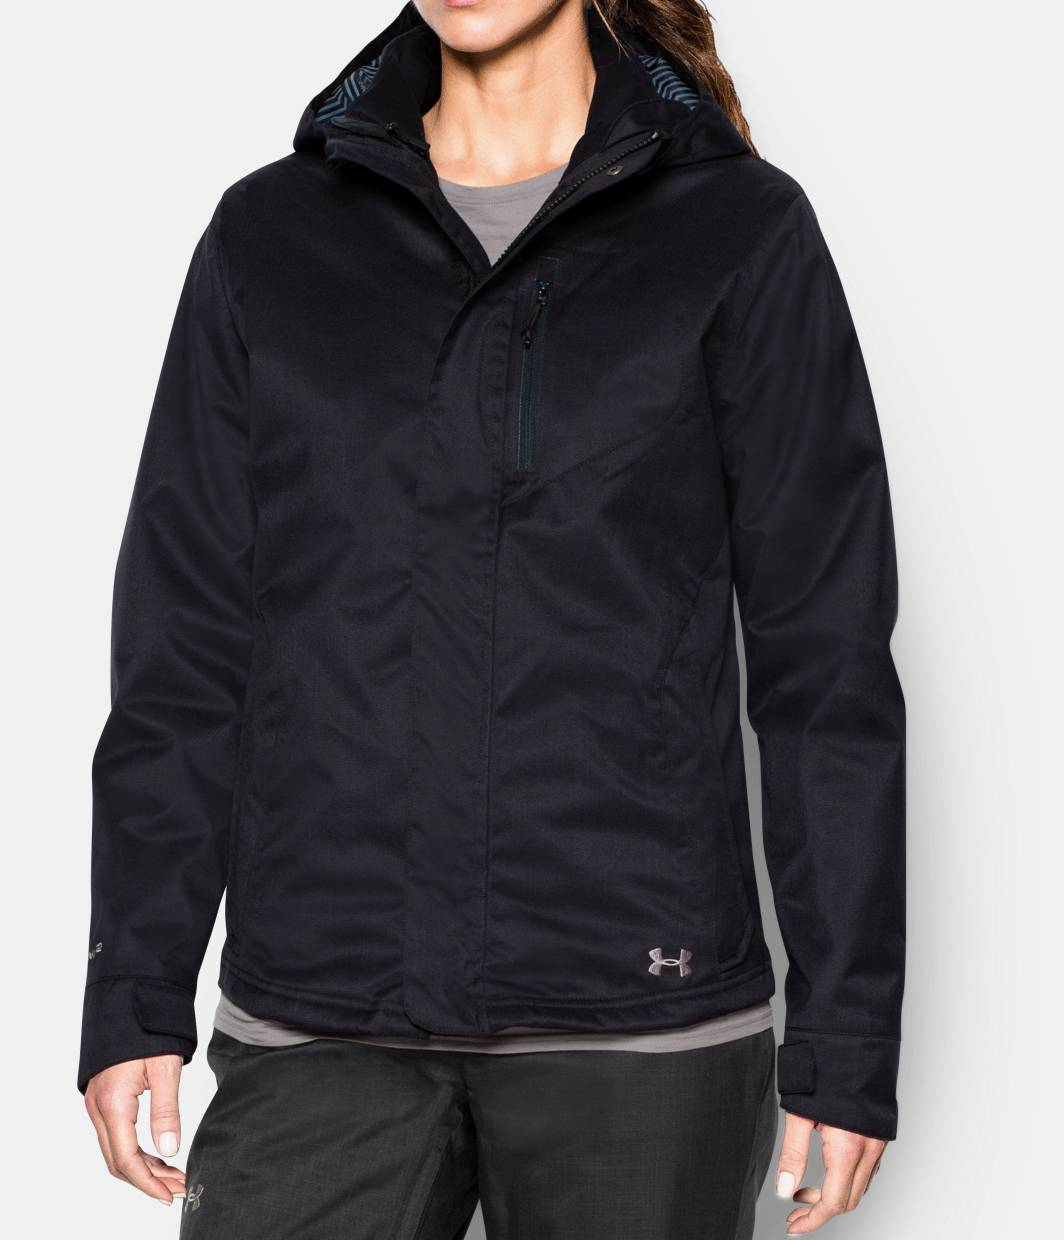 Women's Outlet Jackets & Vests | Under Armour US